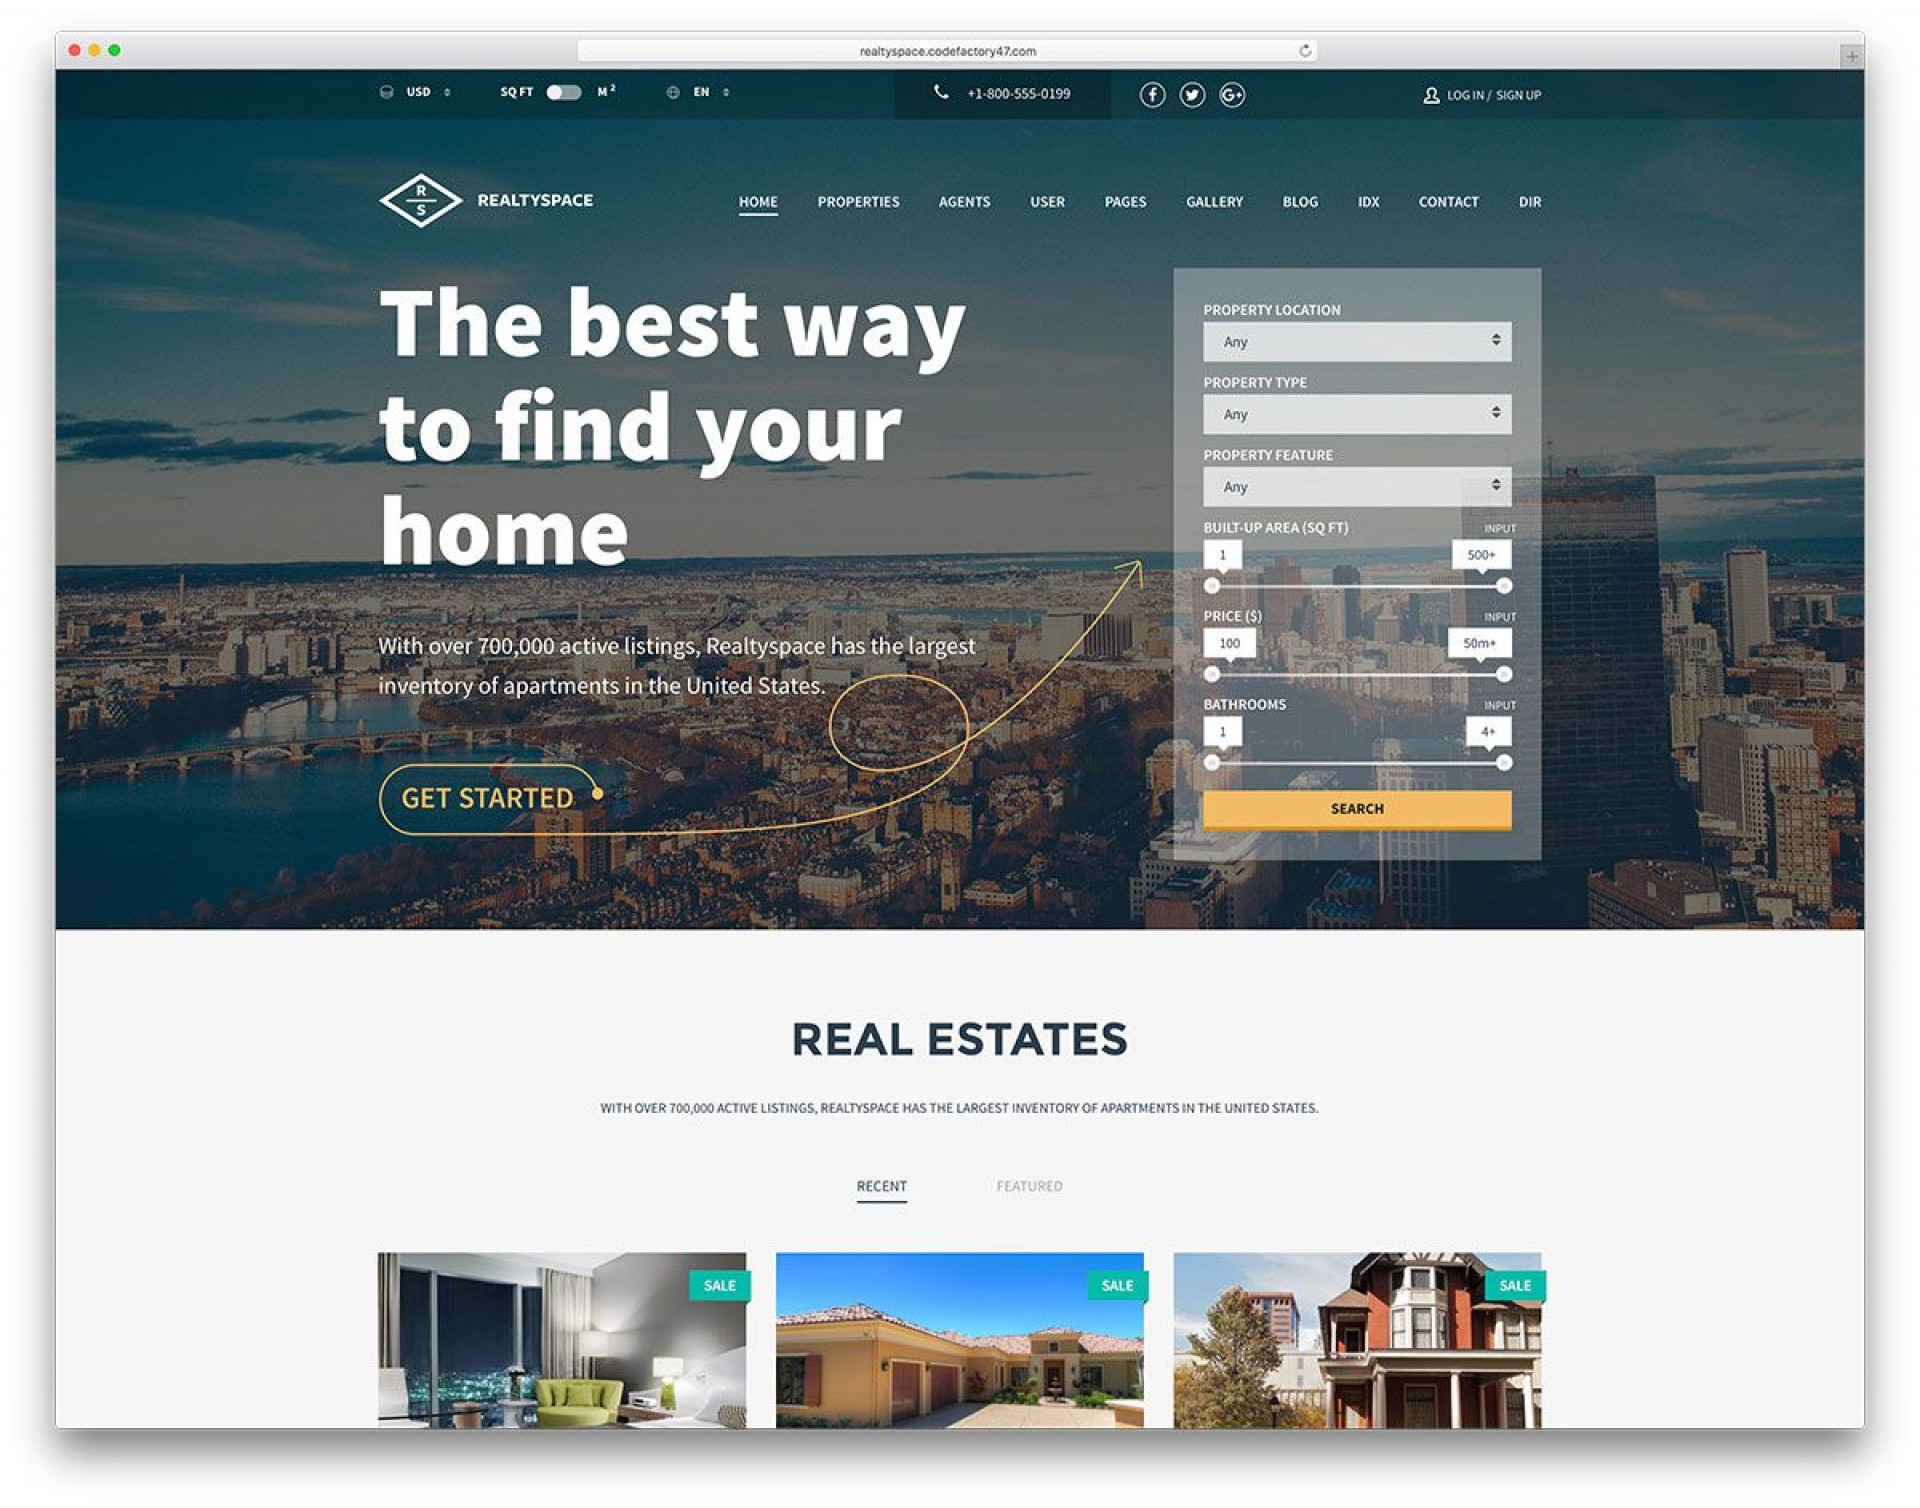 015 Amazing Real Estate Website Template High Resolution  Templates Bootstrap Free Html5 Best Wordpres1920